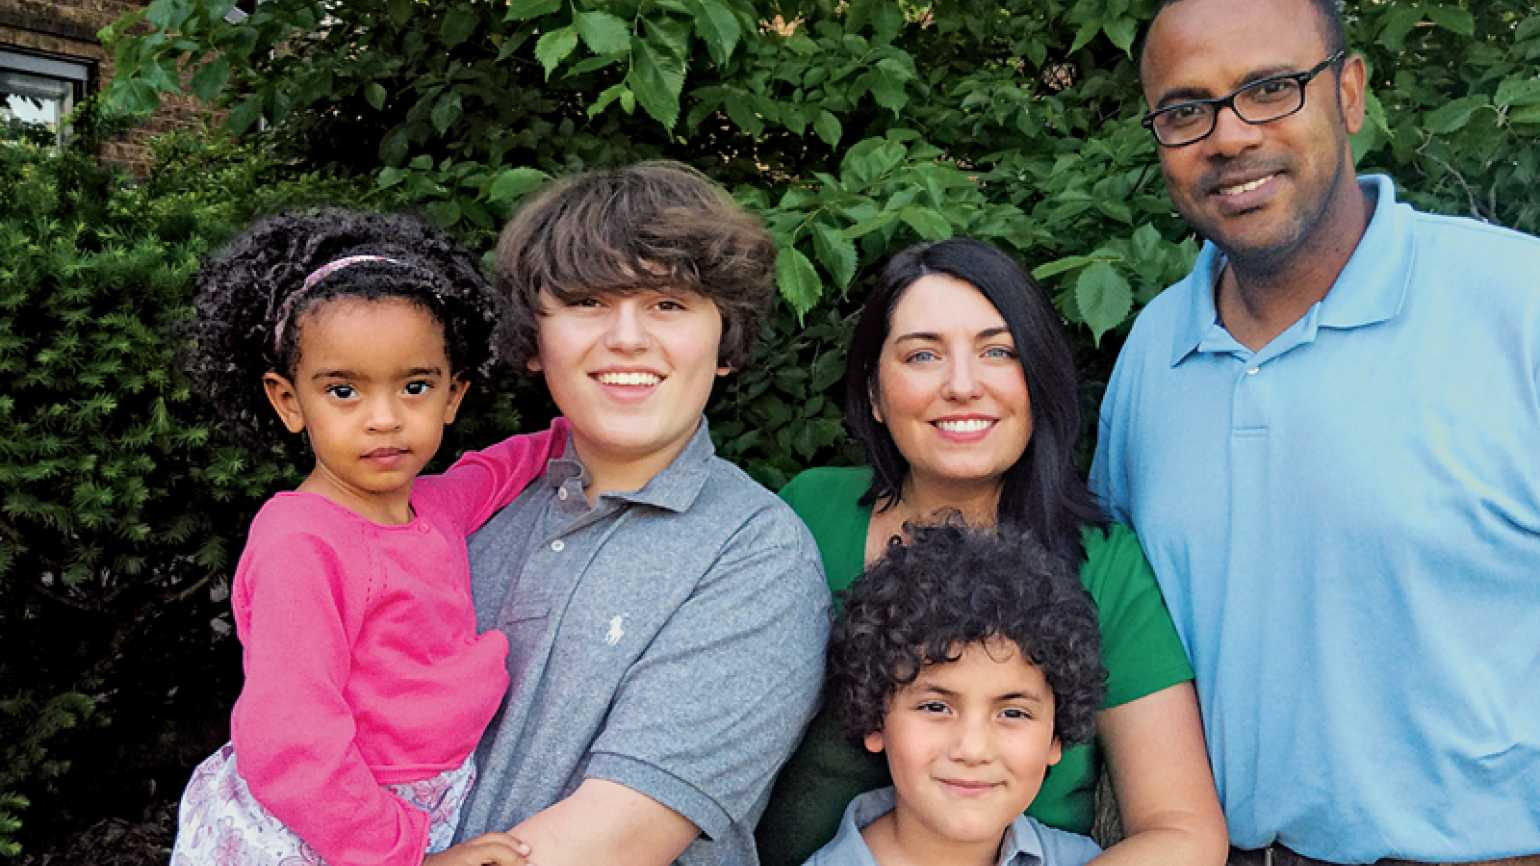 Molly Brown Pennington and her family, Dari, Dash, Phineas and Val (l-r)